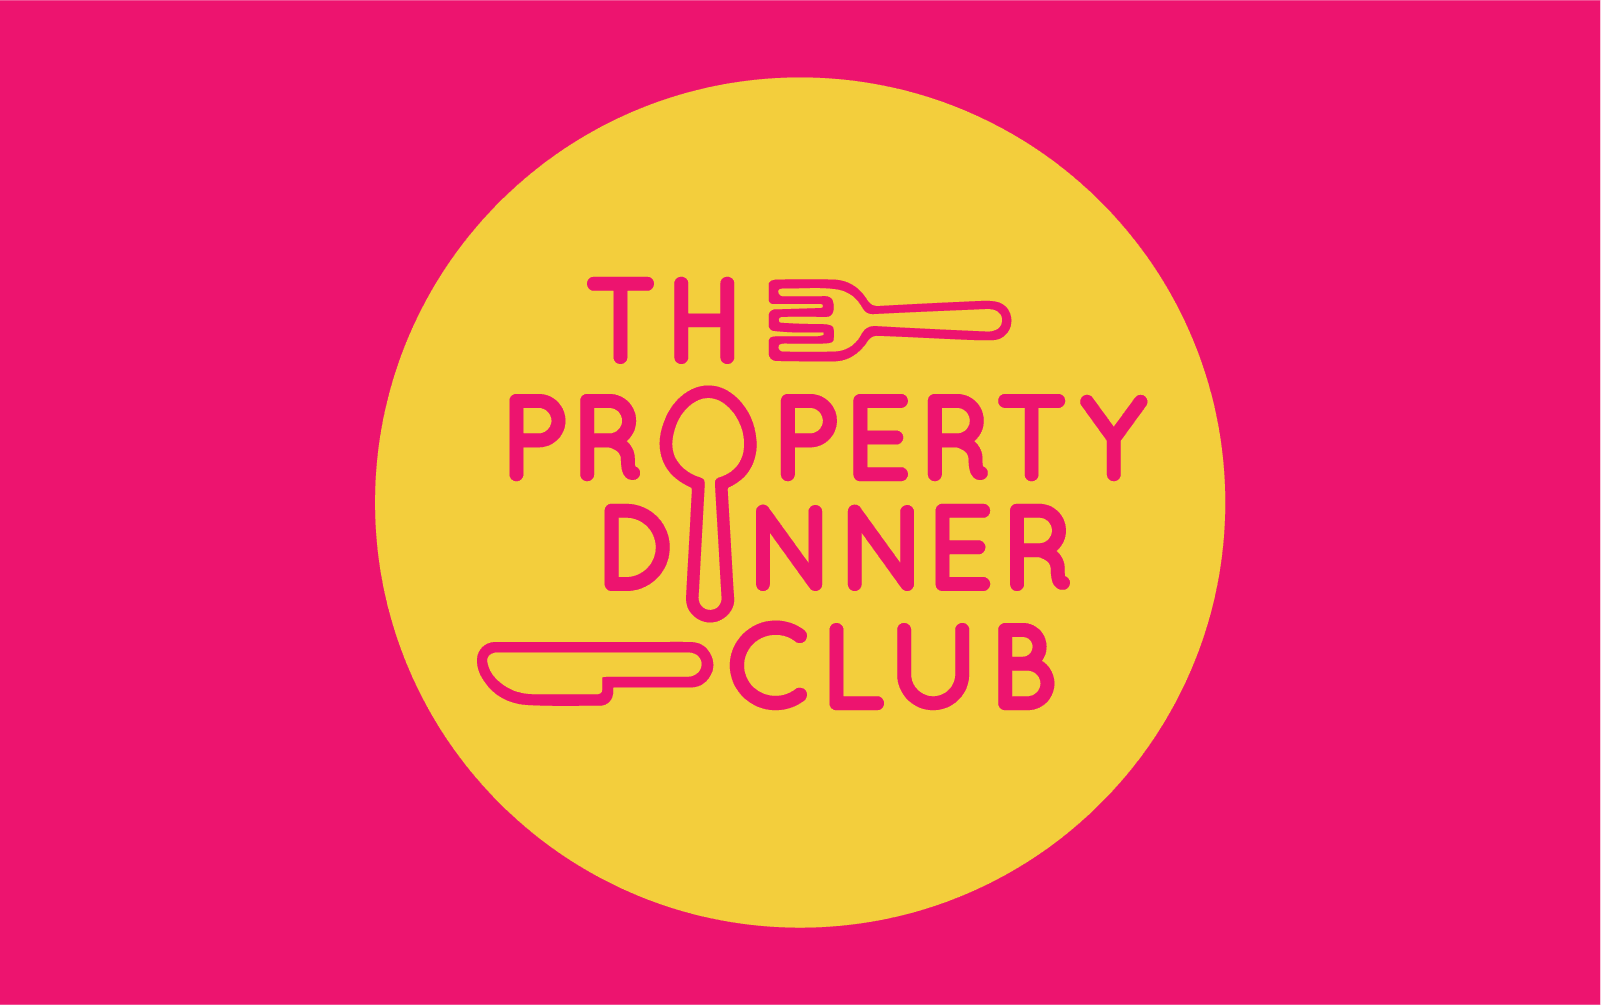 The Property Dinner Club